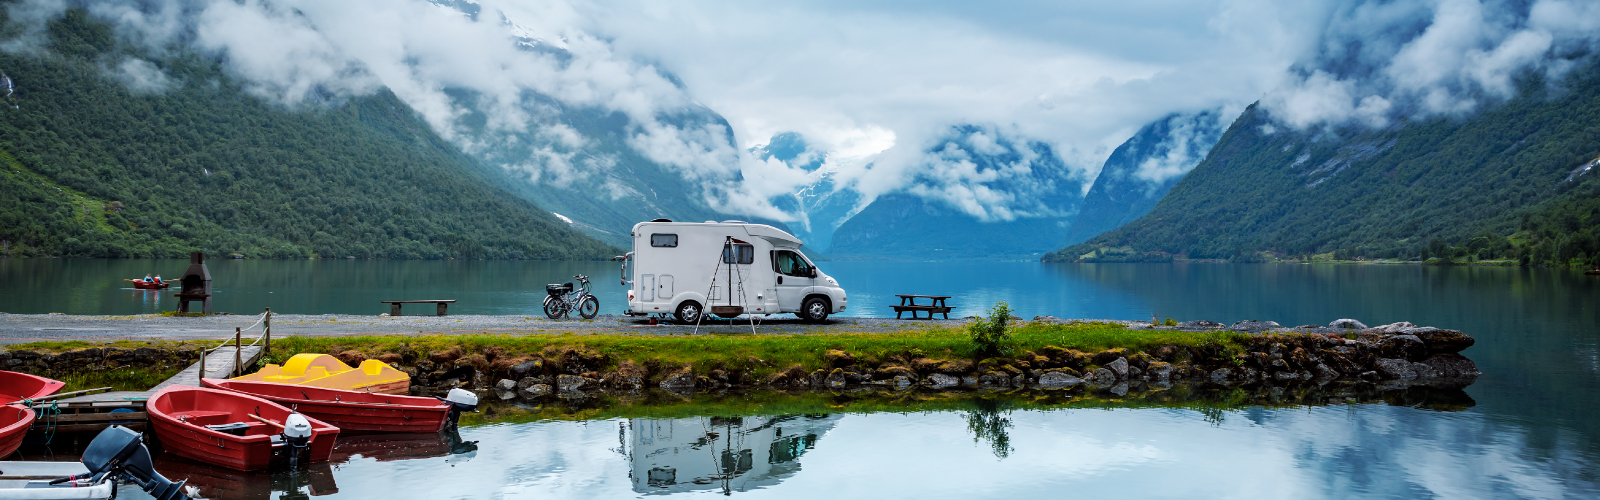 RV with mountains in the background